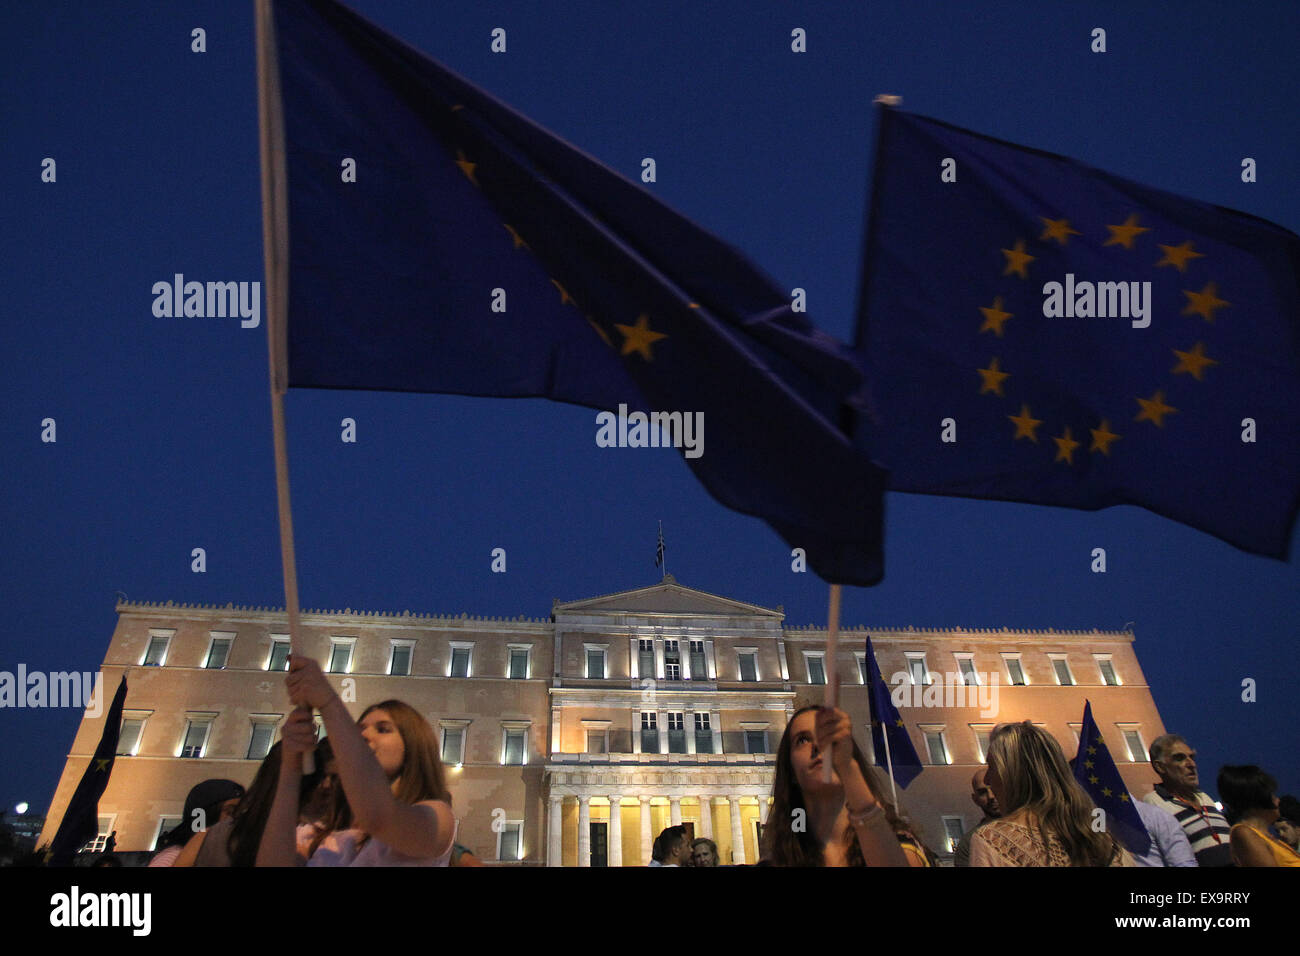 Athens, Greece. 9th July, 2015. Protesters hold European Union flags during a Pro-Euro rally in front of the parliament - Stock Image